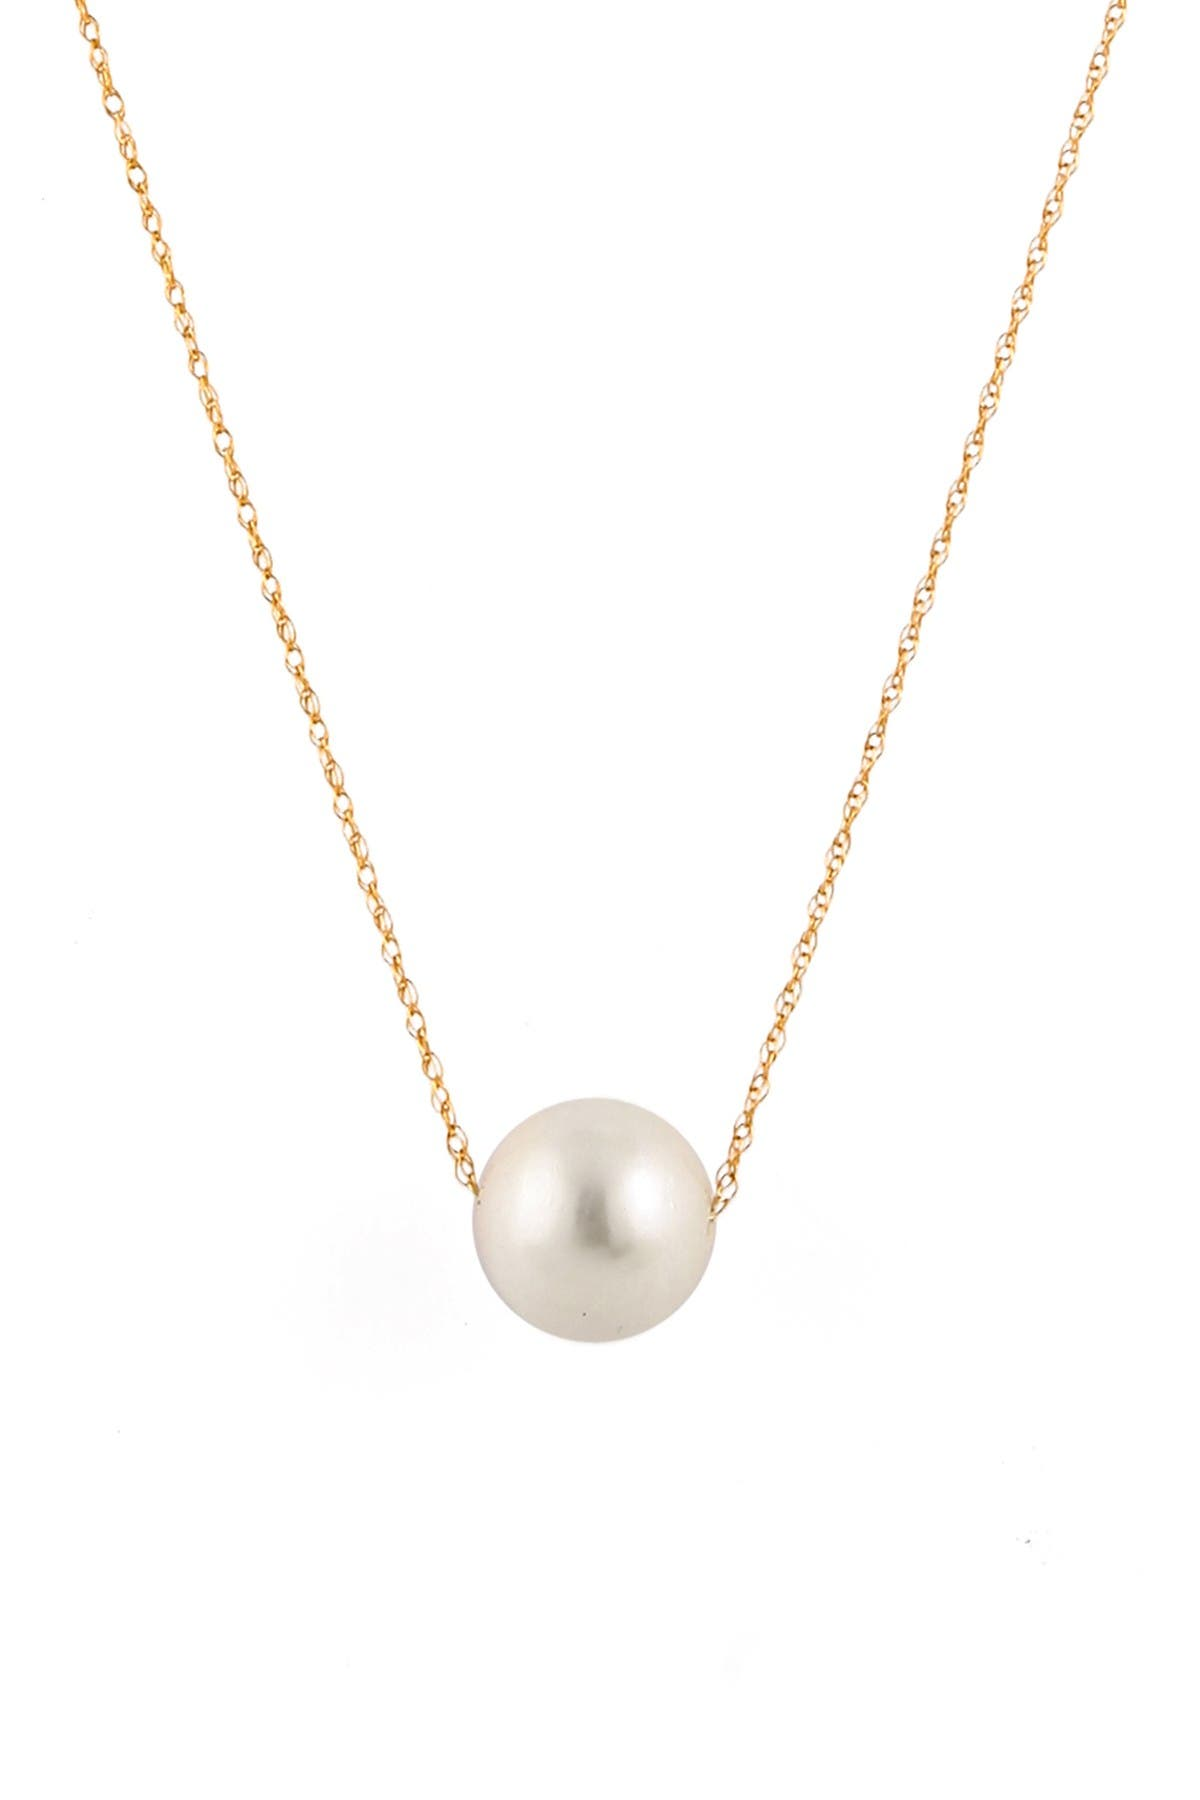 Image of Splendid Pearls 14K Yellow Gold 10-11mm White Freshwater Pearl Slider Necklace